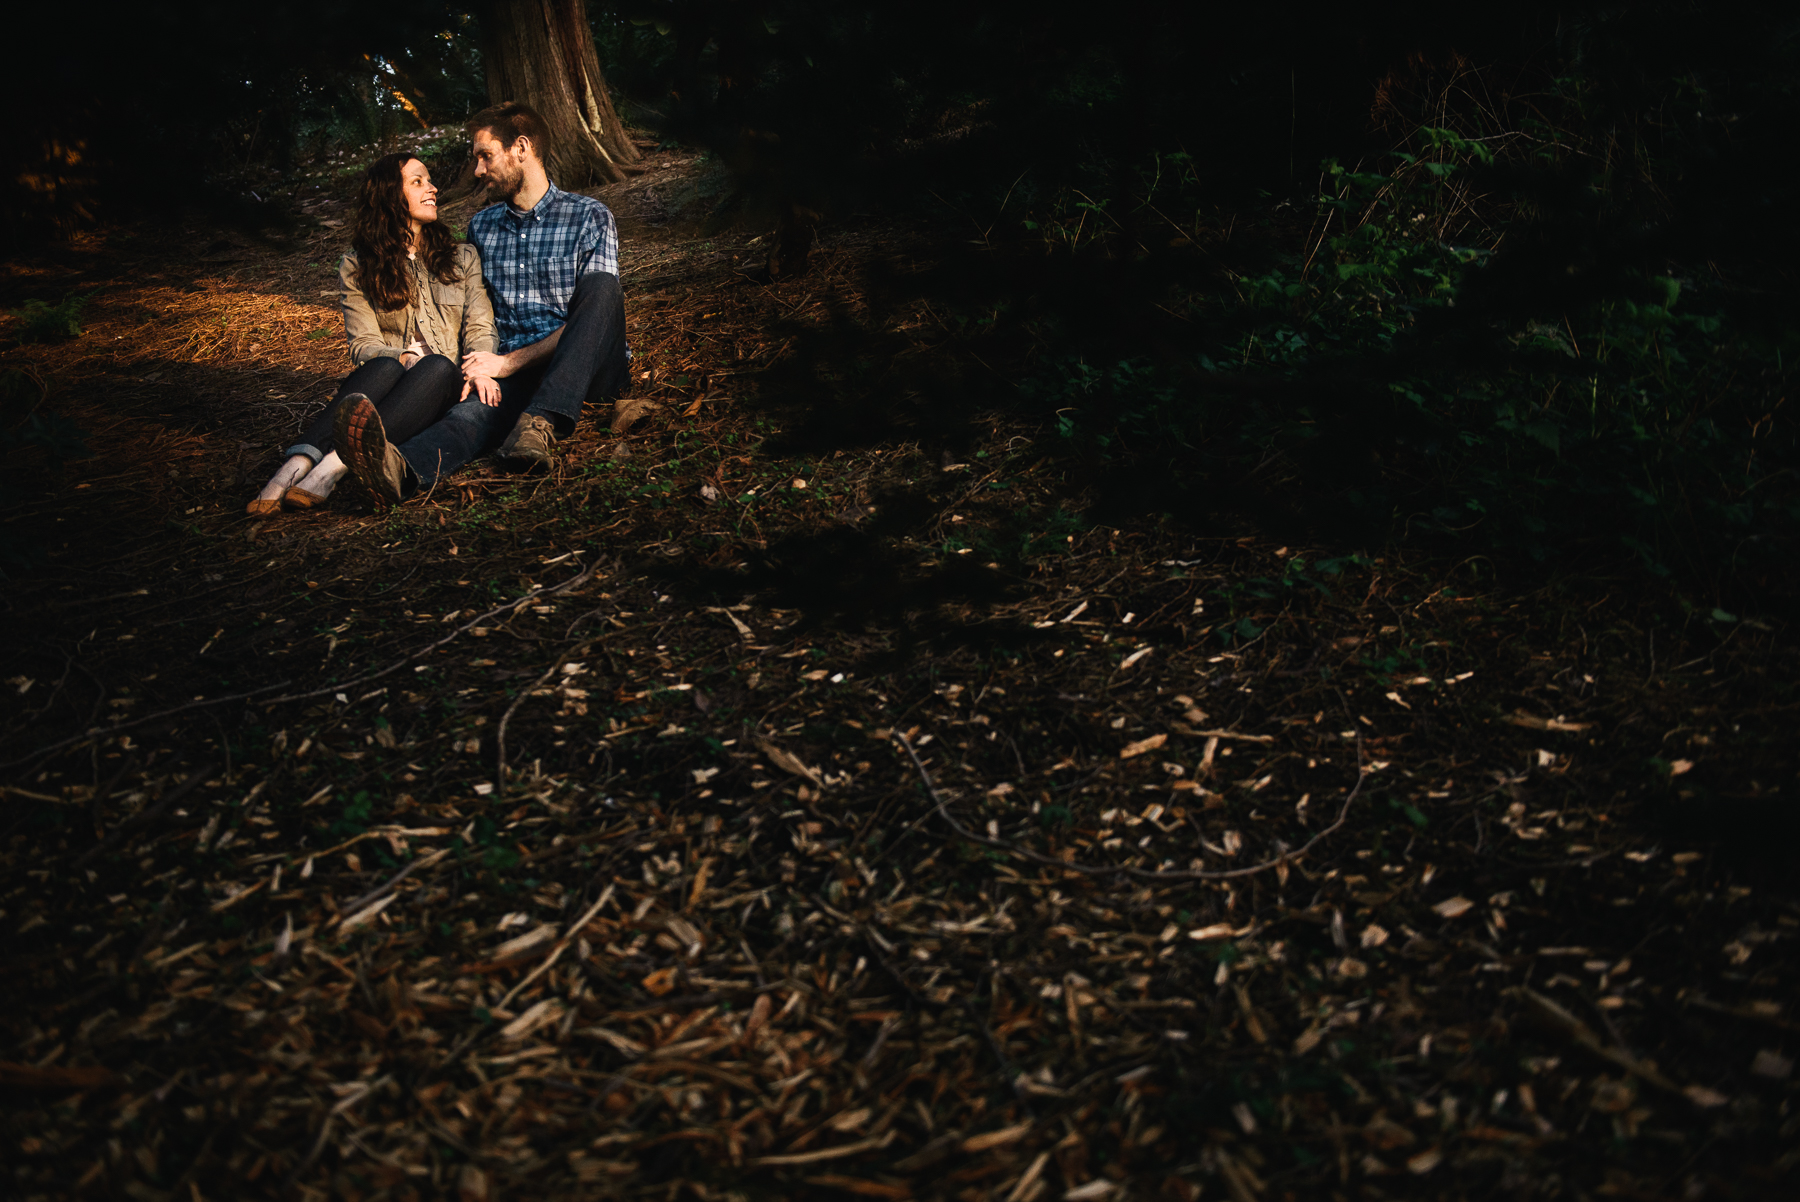 seattle-washington-park-arboretum-engagement-session-11